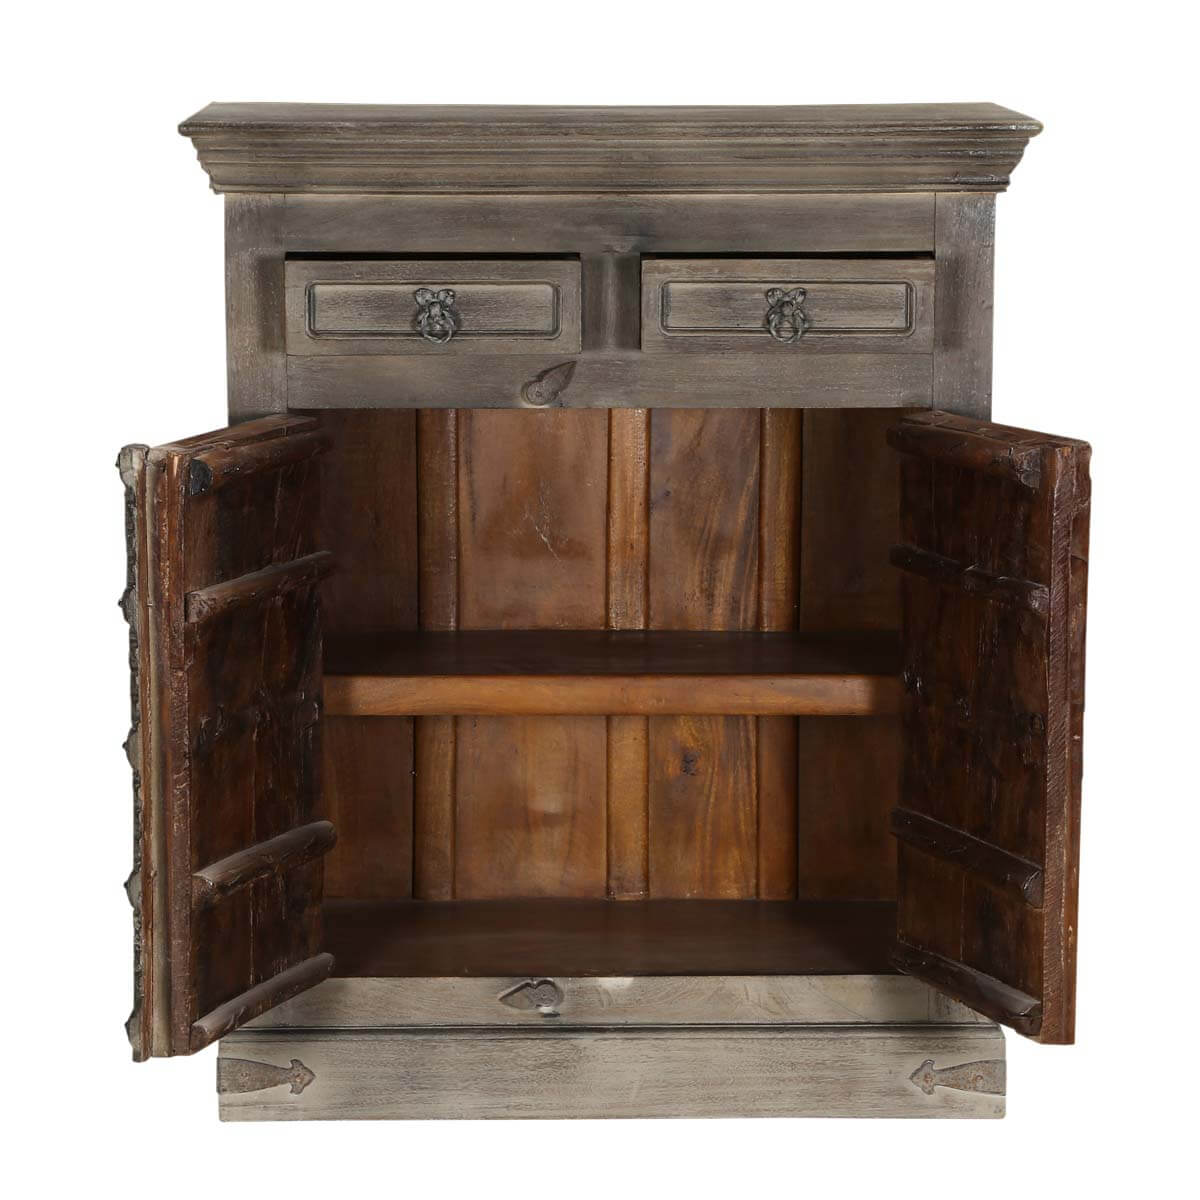 chartres 35 5 dark grey solid wood rustic dining sideboard buffet